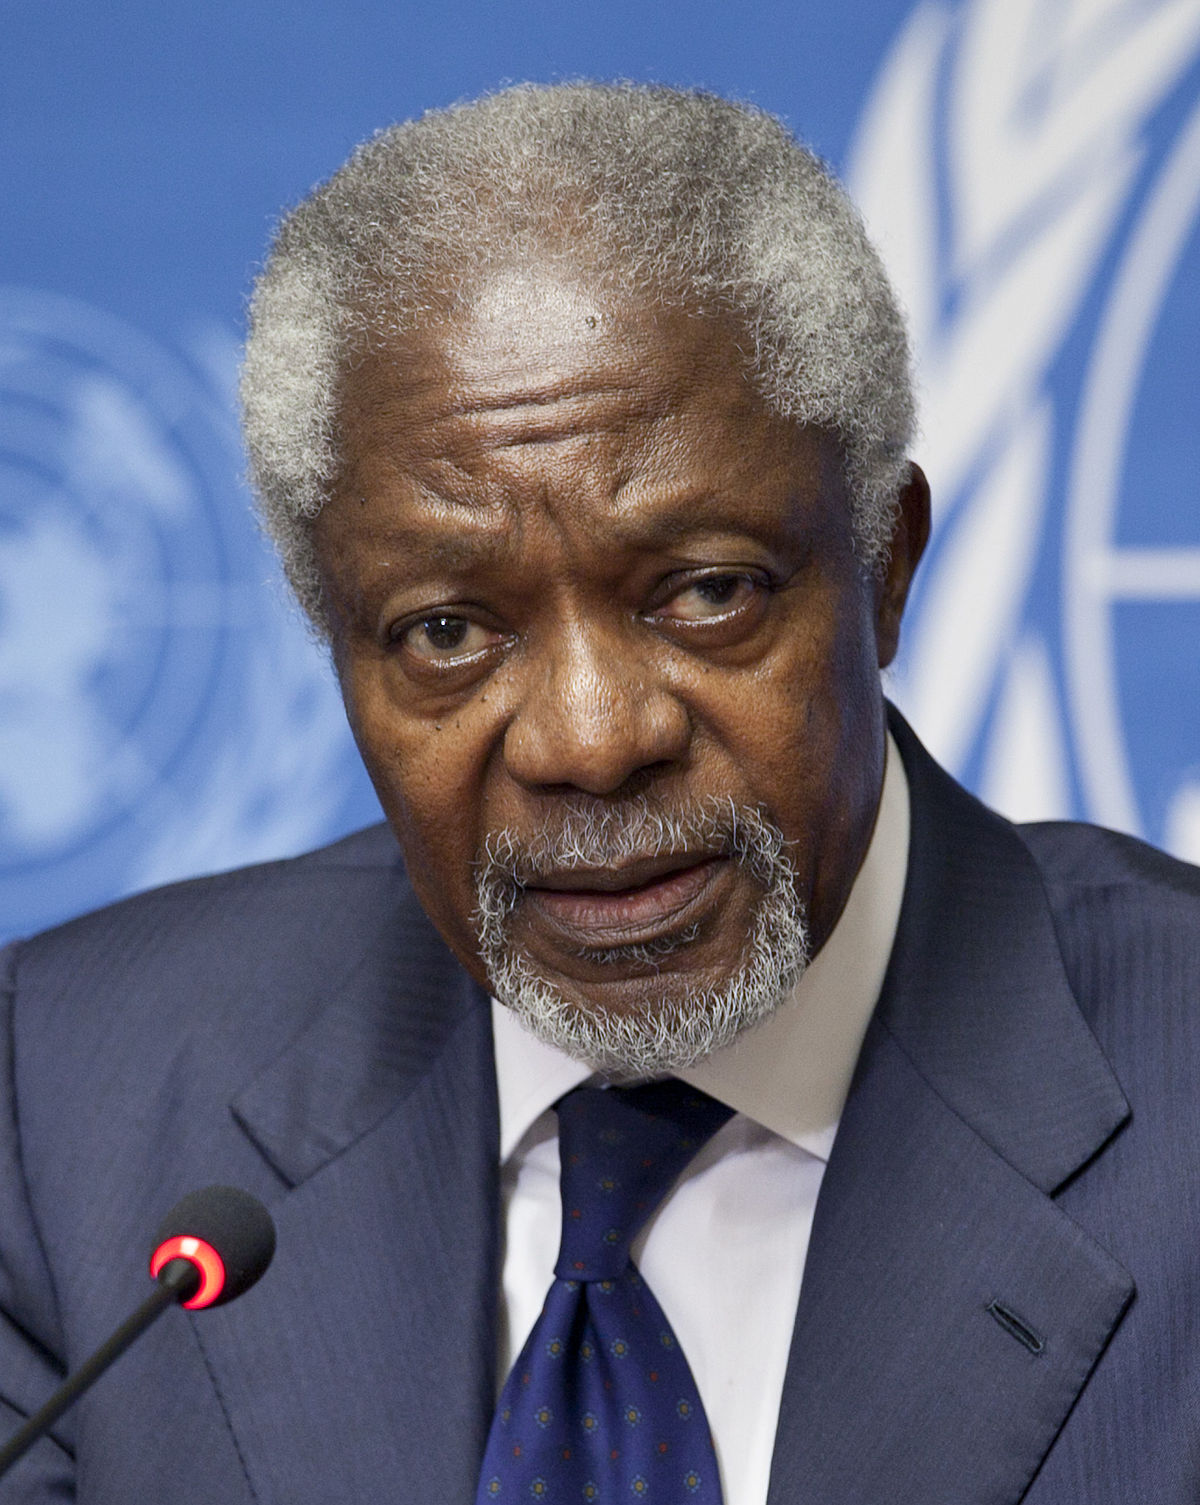 Wolrd leaders mourn the loss of Kofi Annan: He was a leader, but also a friend